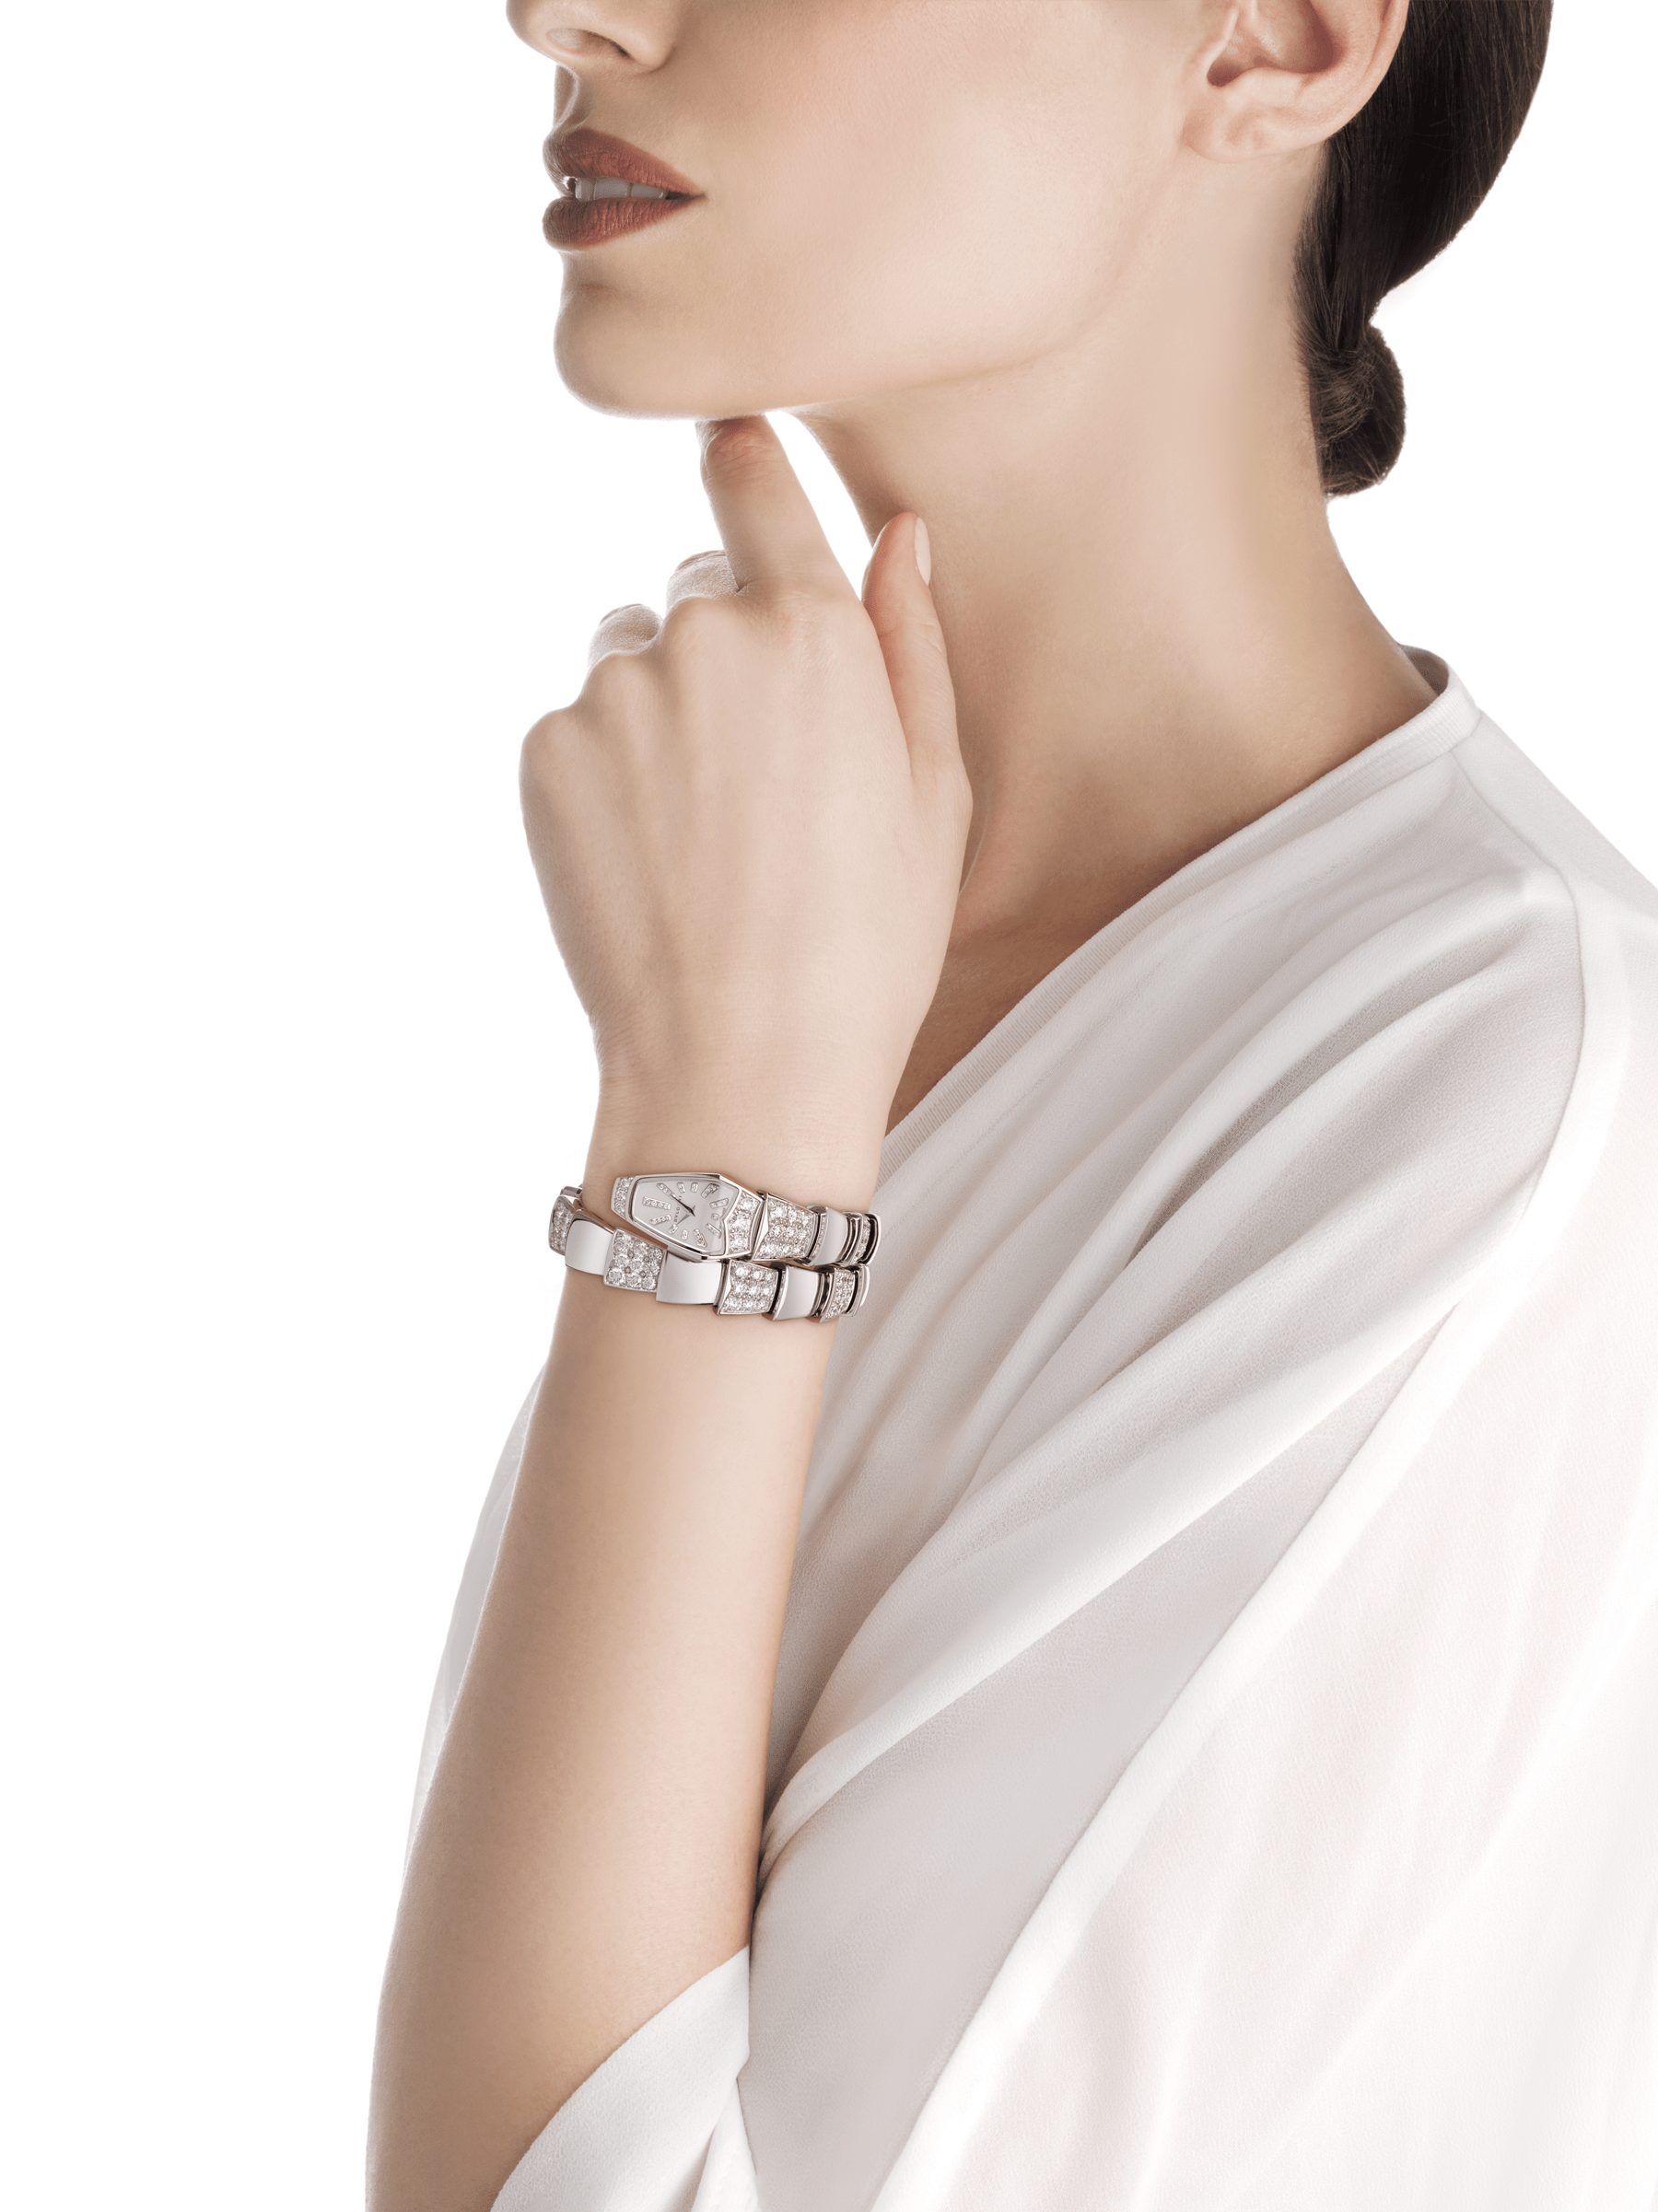 Serpenti Jewellery Watch in 18 kt white gold case and single spiral bracelet, both set with brilliant cut diamonds, white mother-of-pearl dial and diamond indexes. 101787 image 3